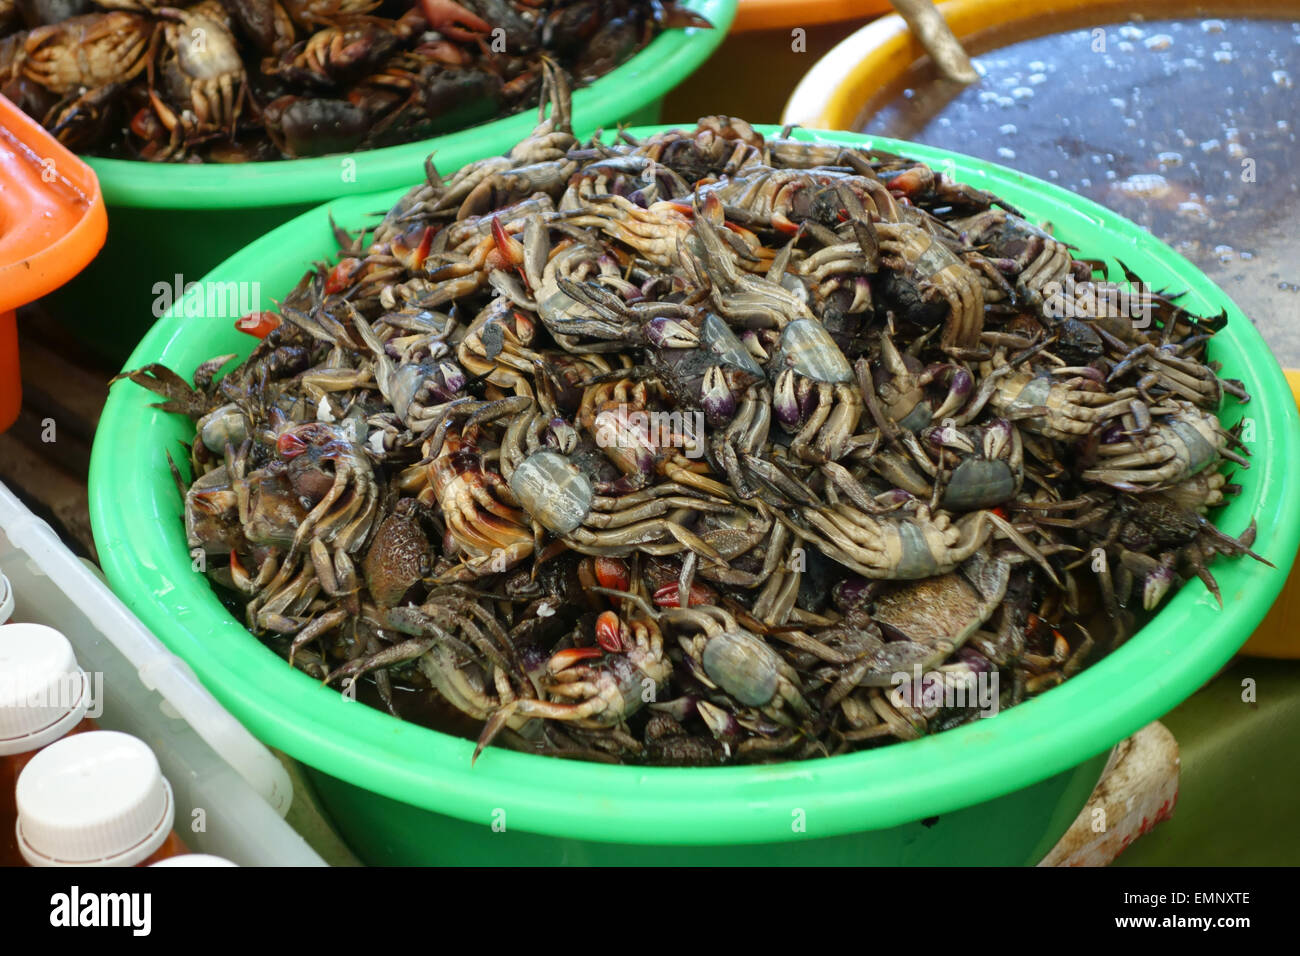 Small dead crabs for sale on a stall in a Bangkok food market - Stock Image